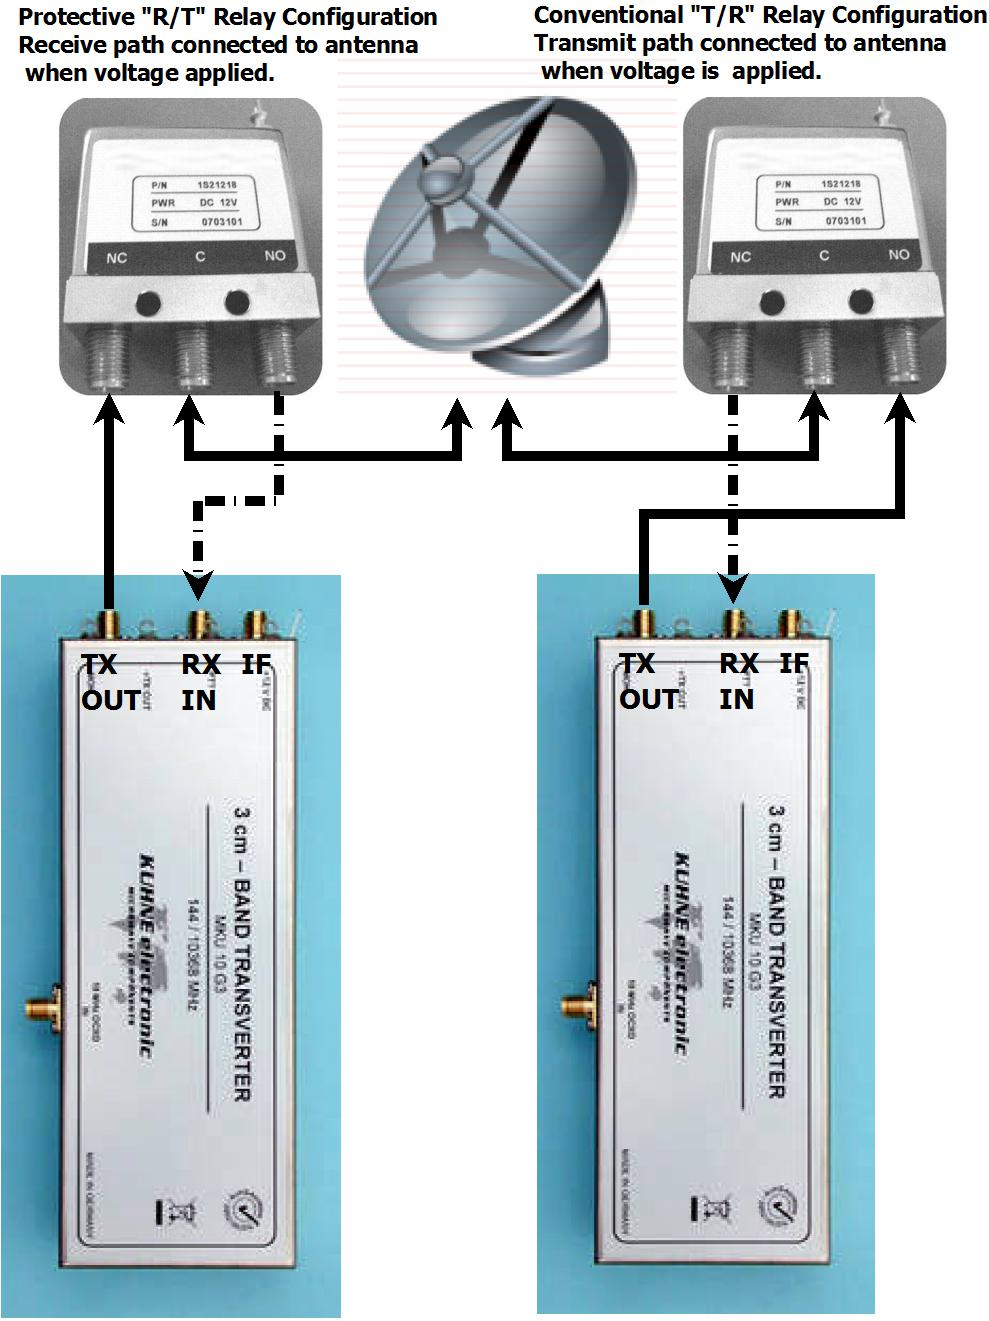 NLRSGHz  GHz Microwave Coaxial Relay Considerations - Relay com no nc